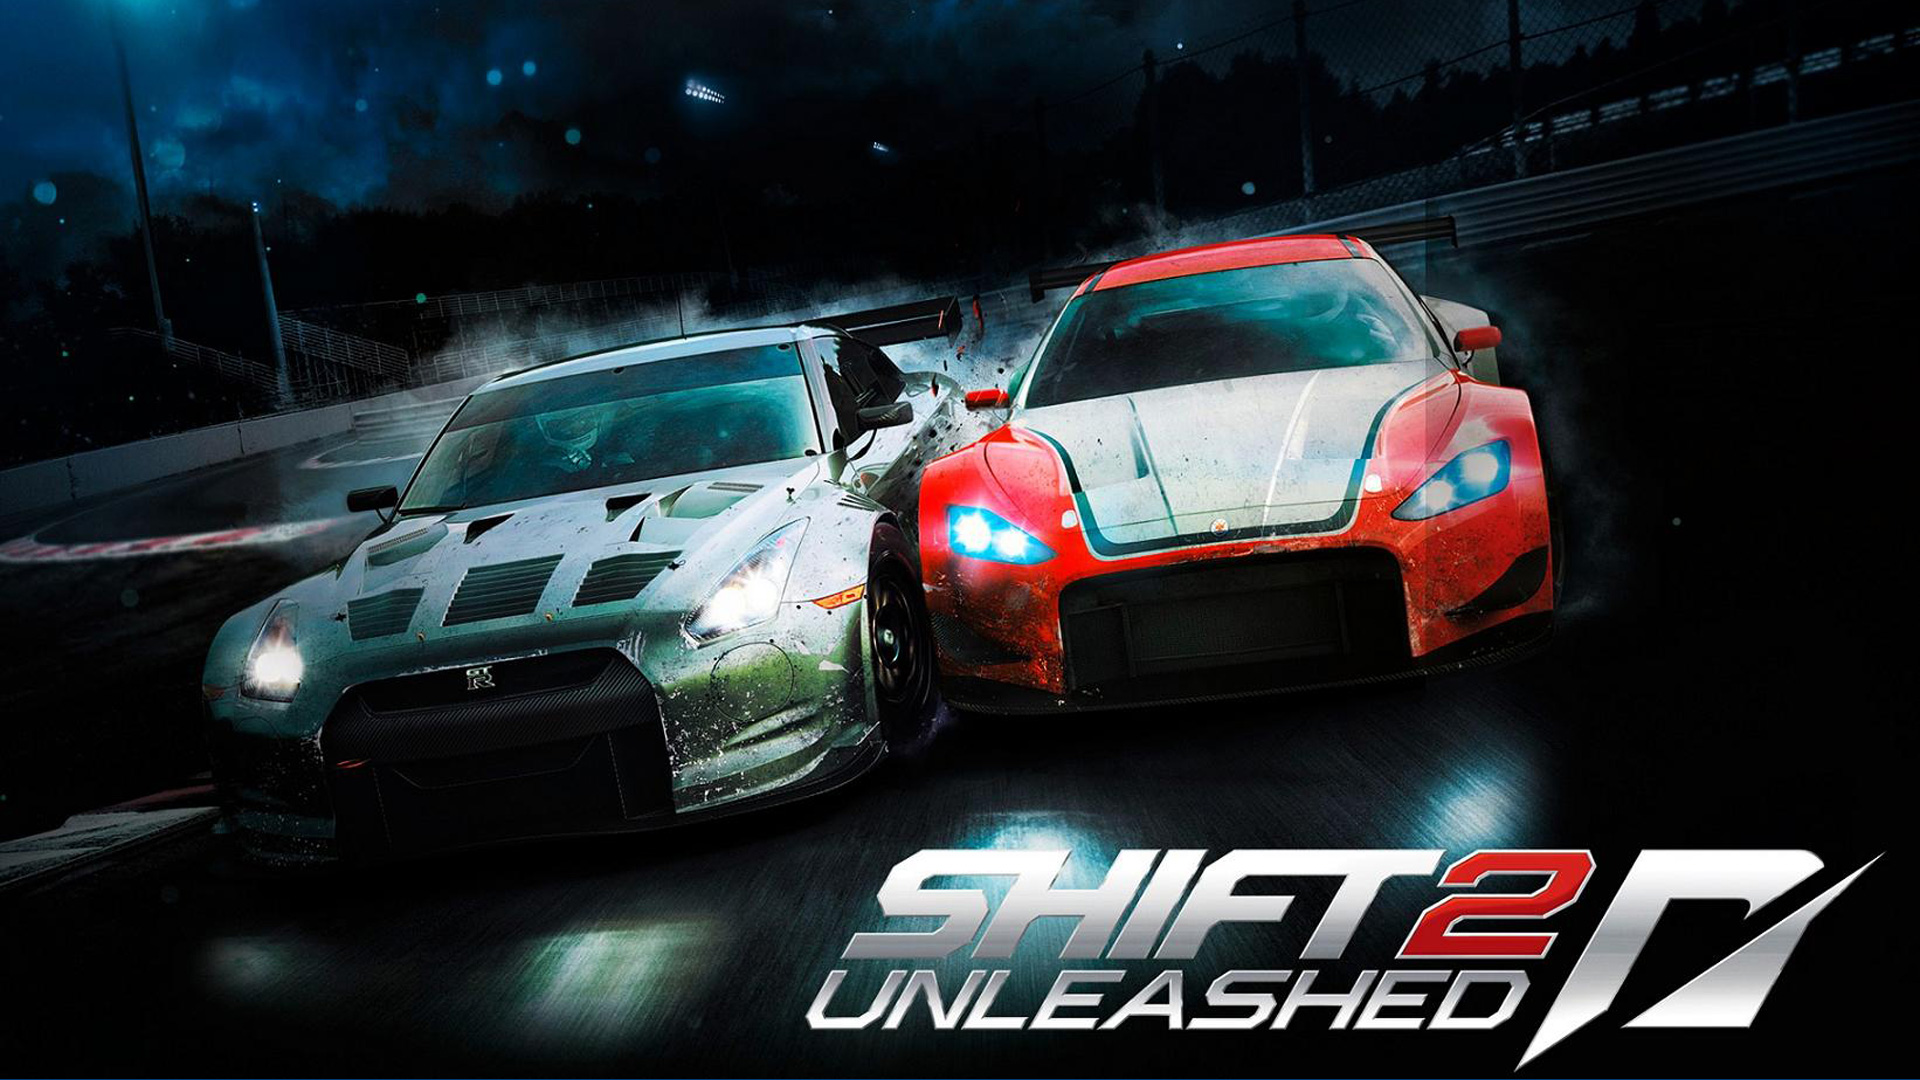 Free Need for Speed: Shift 2 Unleashed Wallpaper in 1920x1080